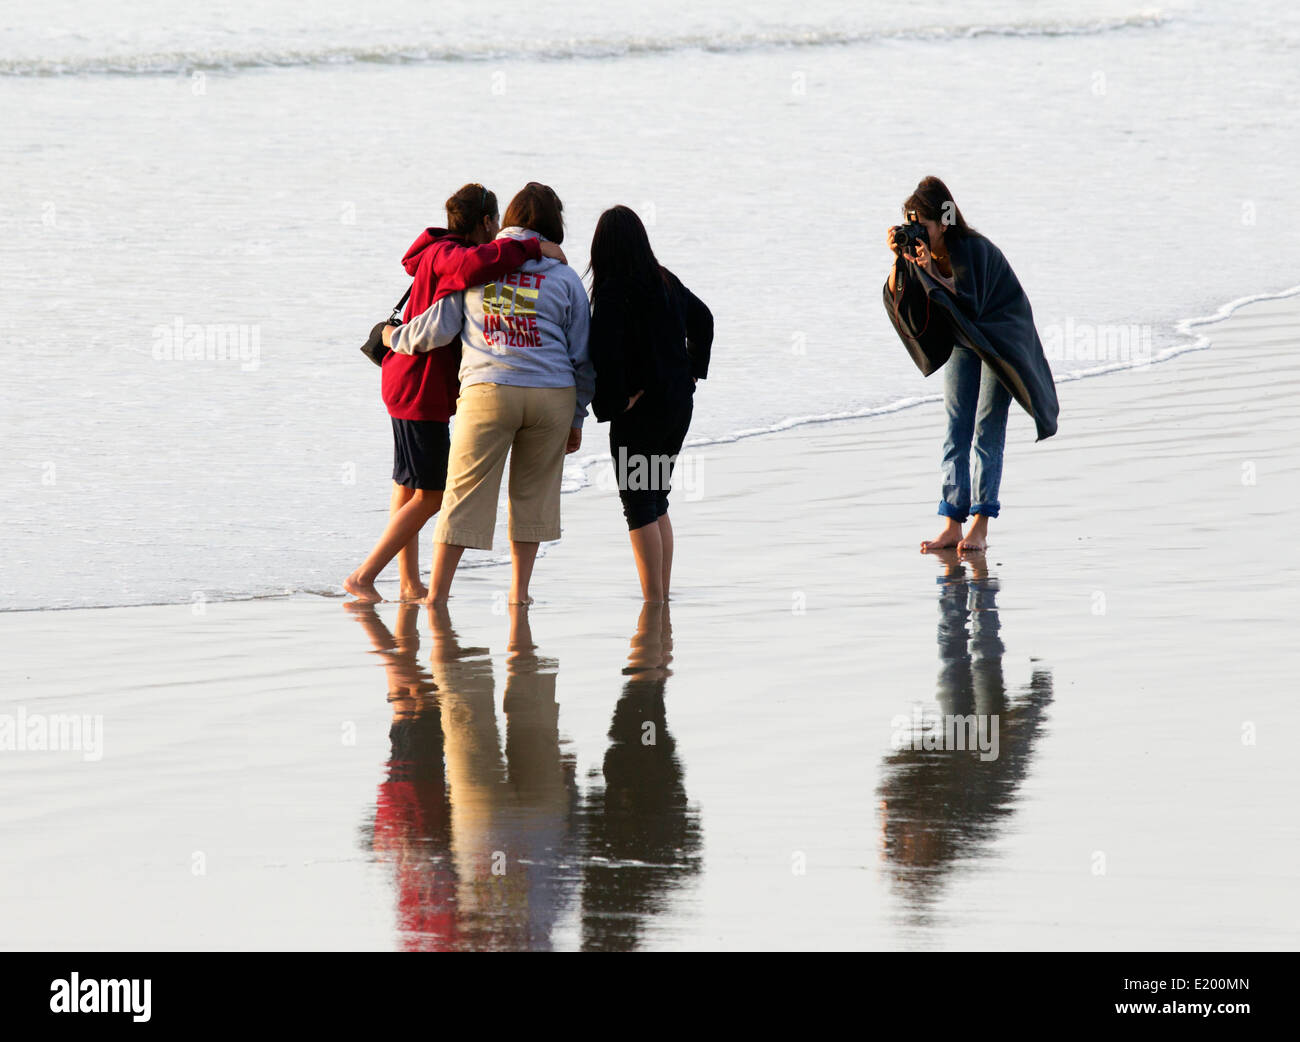 Three Girls at the Seashore Being Photographed by a Fourth Girl - Stock Image